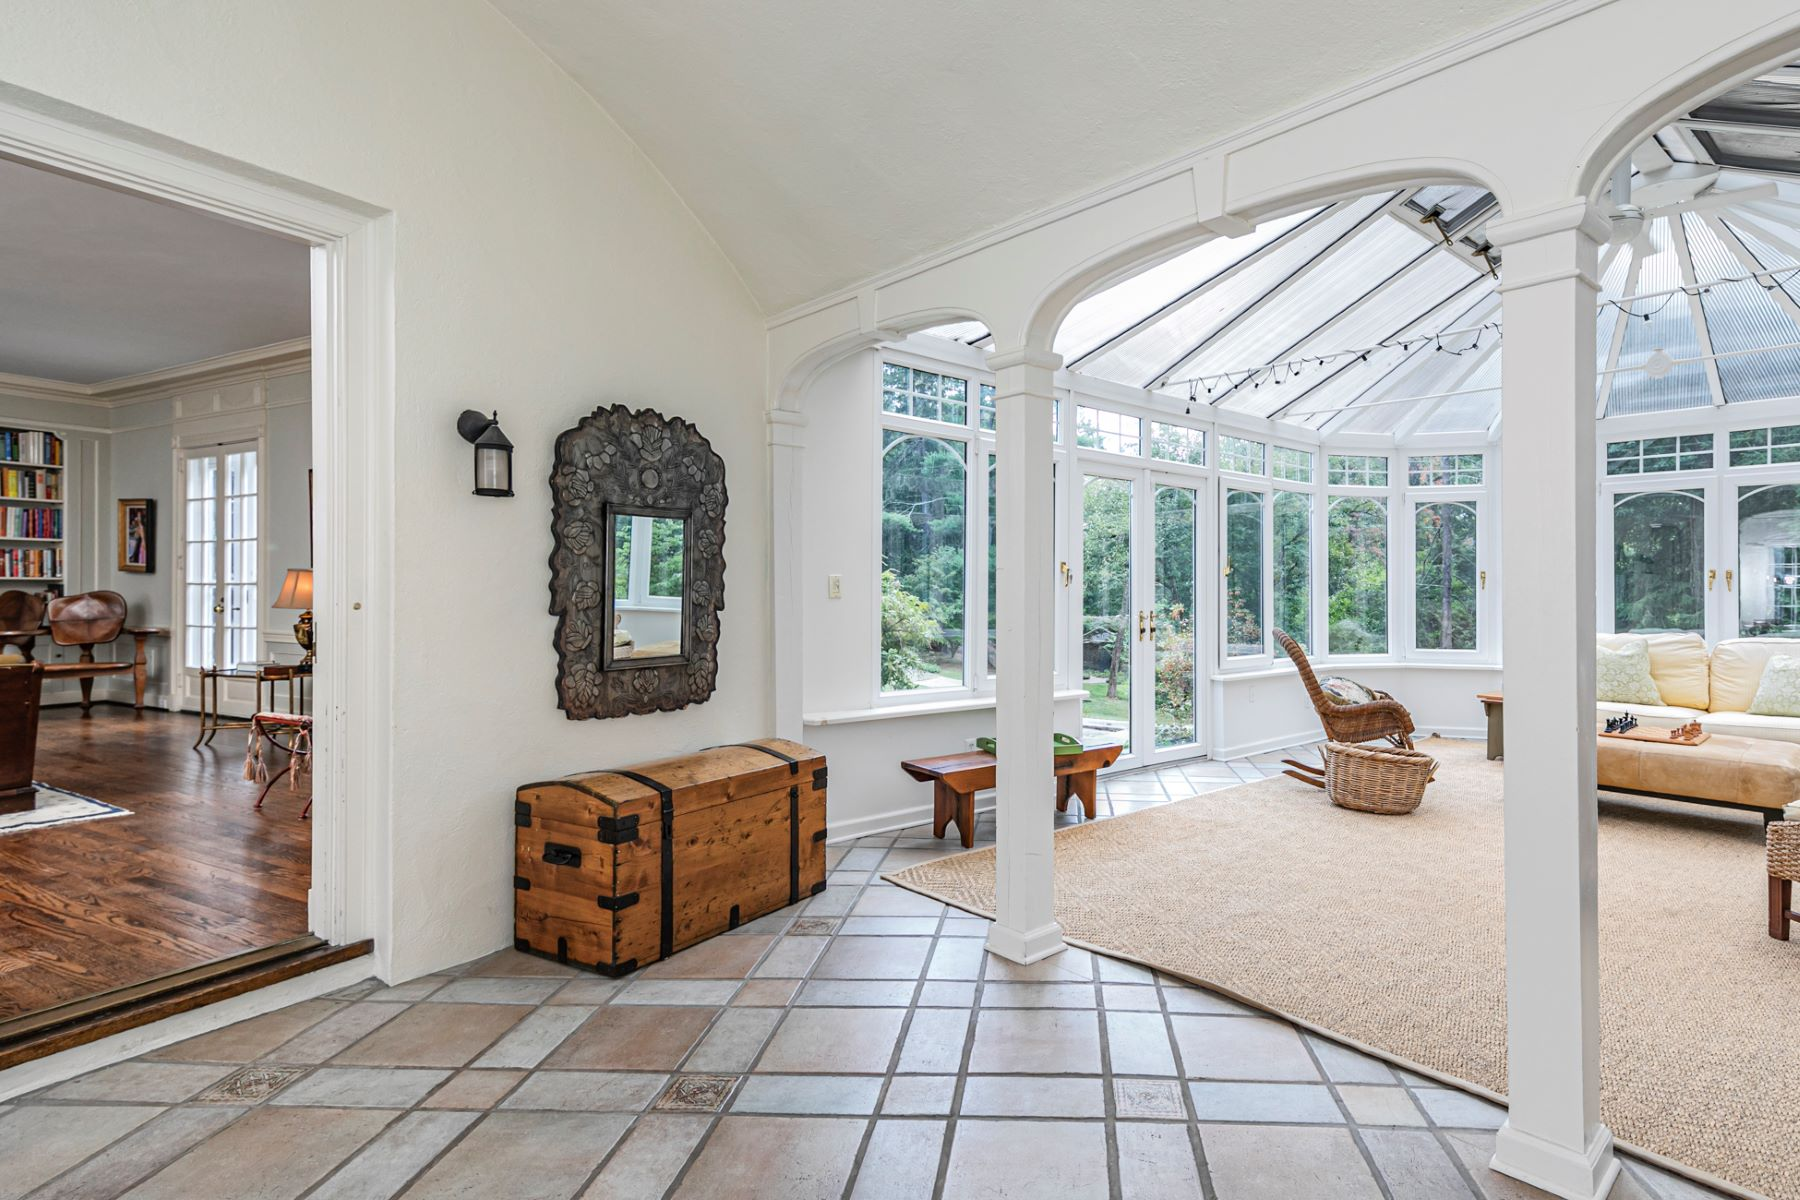 Additional photo for property listing at Storied Princeton Treasure, Polished to Perfection 56 Edgerstoune Road, Princeton, New Jersey 08540 United States